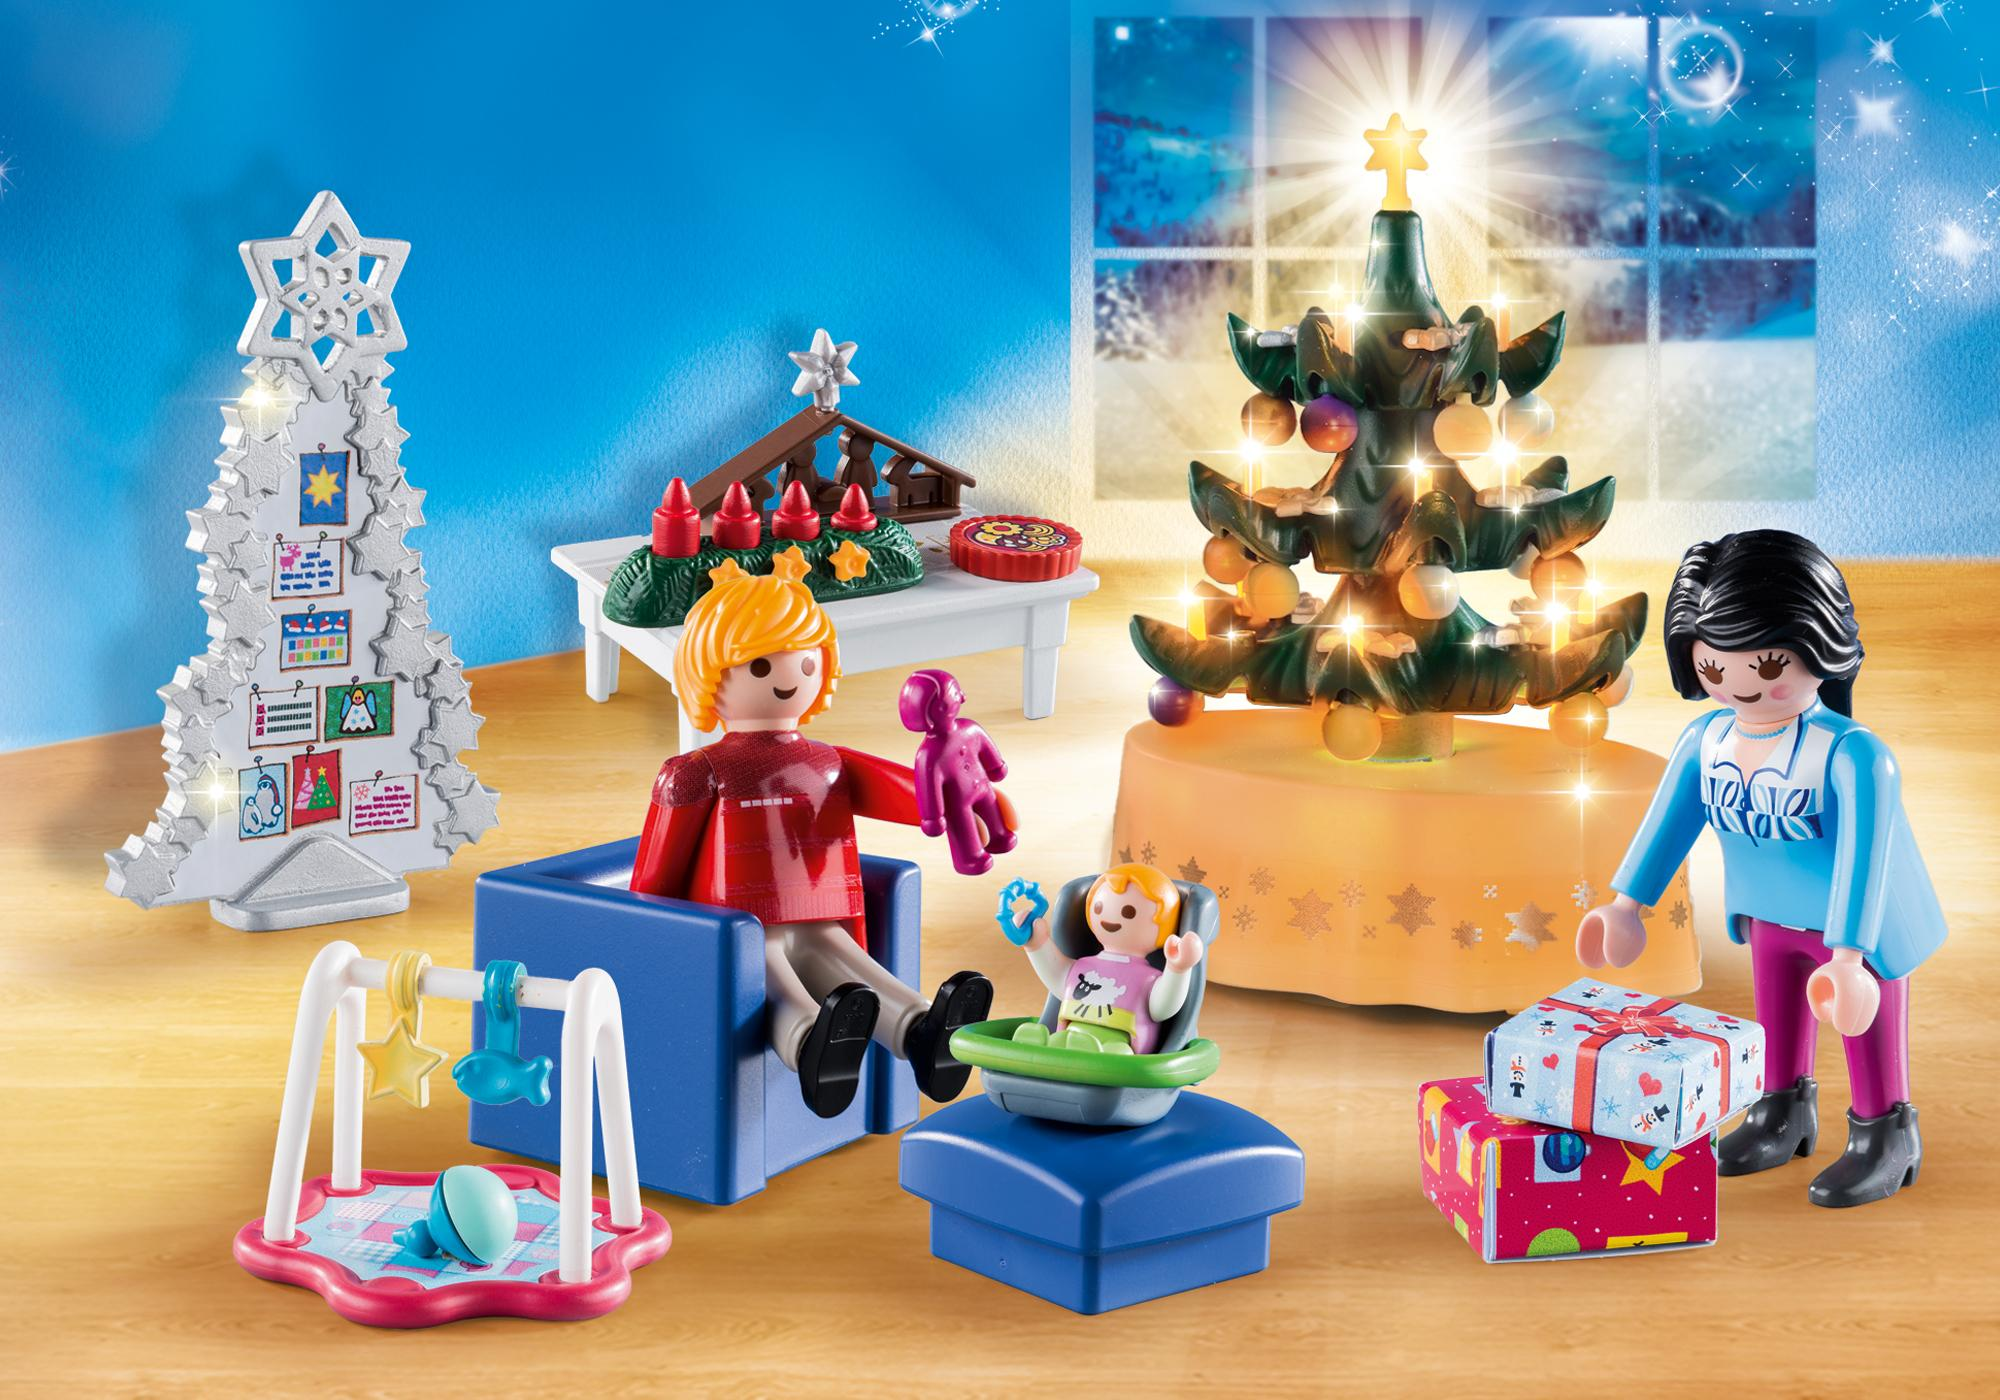 http://media.playmobil.com/i/playmobil/9495_product_detail/Woonkamer in kerststijl